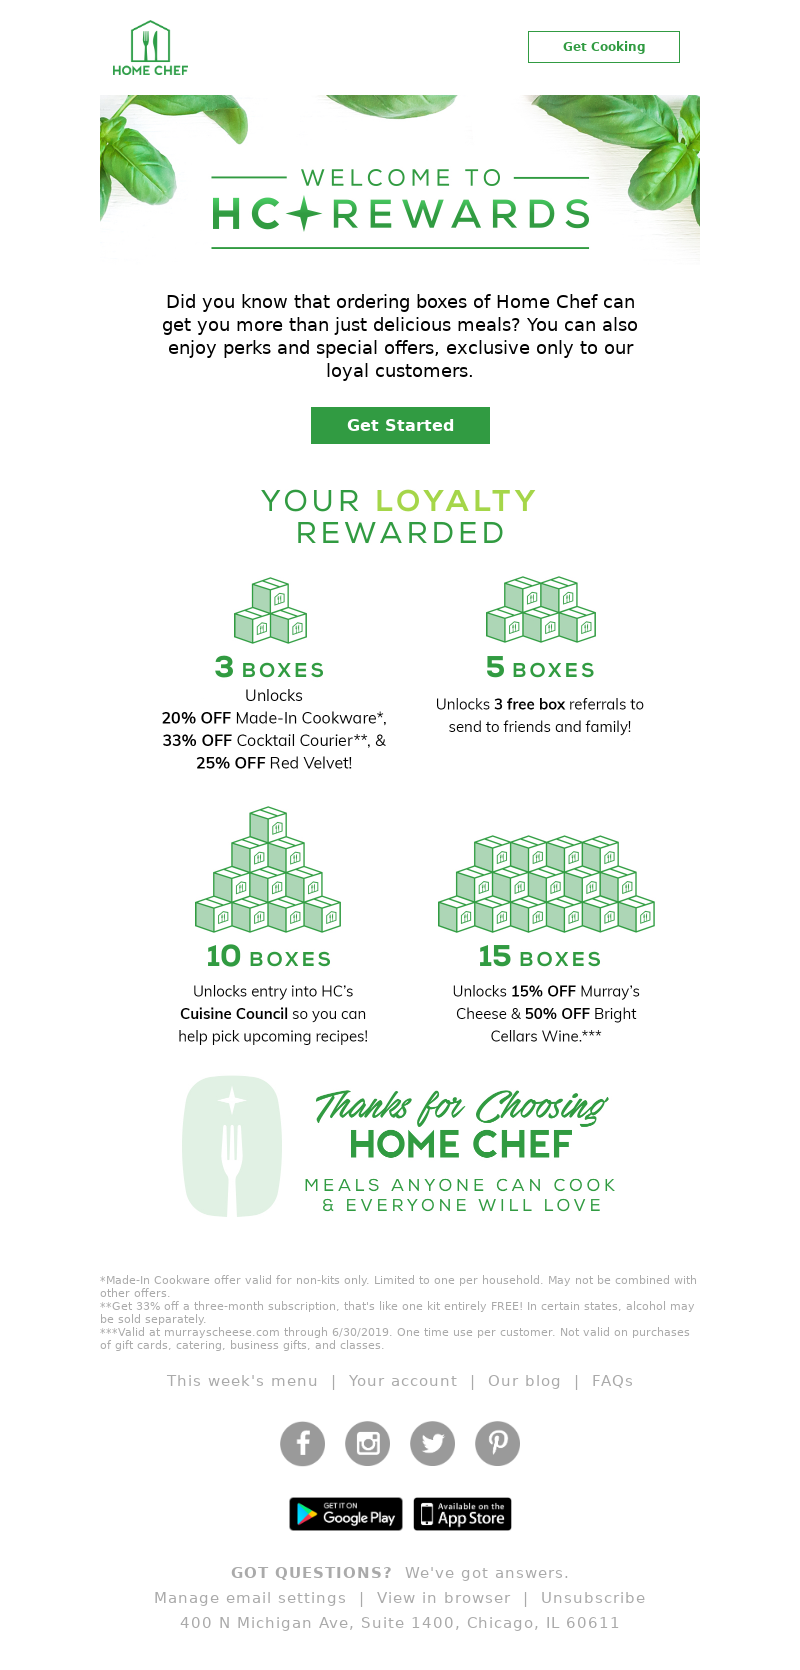 Home Chef - Get rewarded for your Home Chef loyalty!